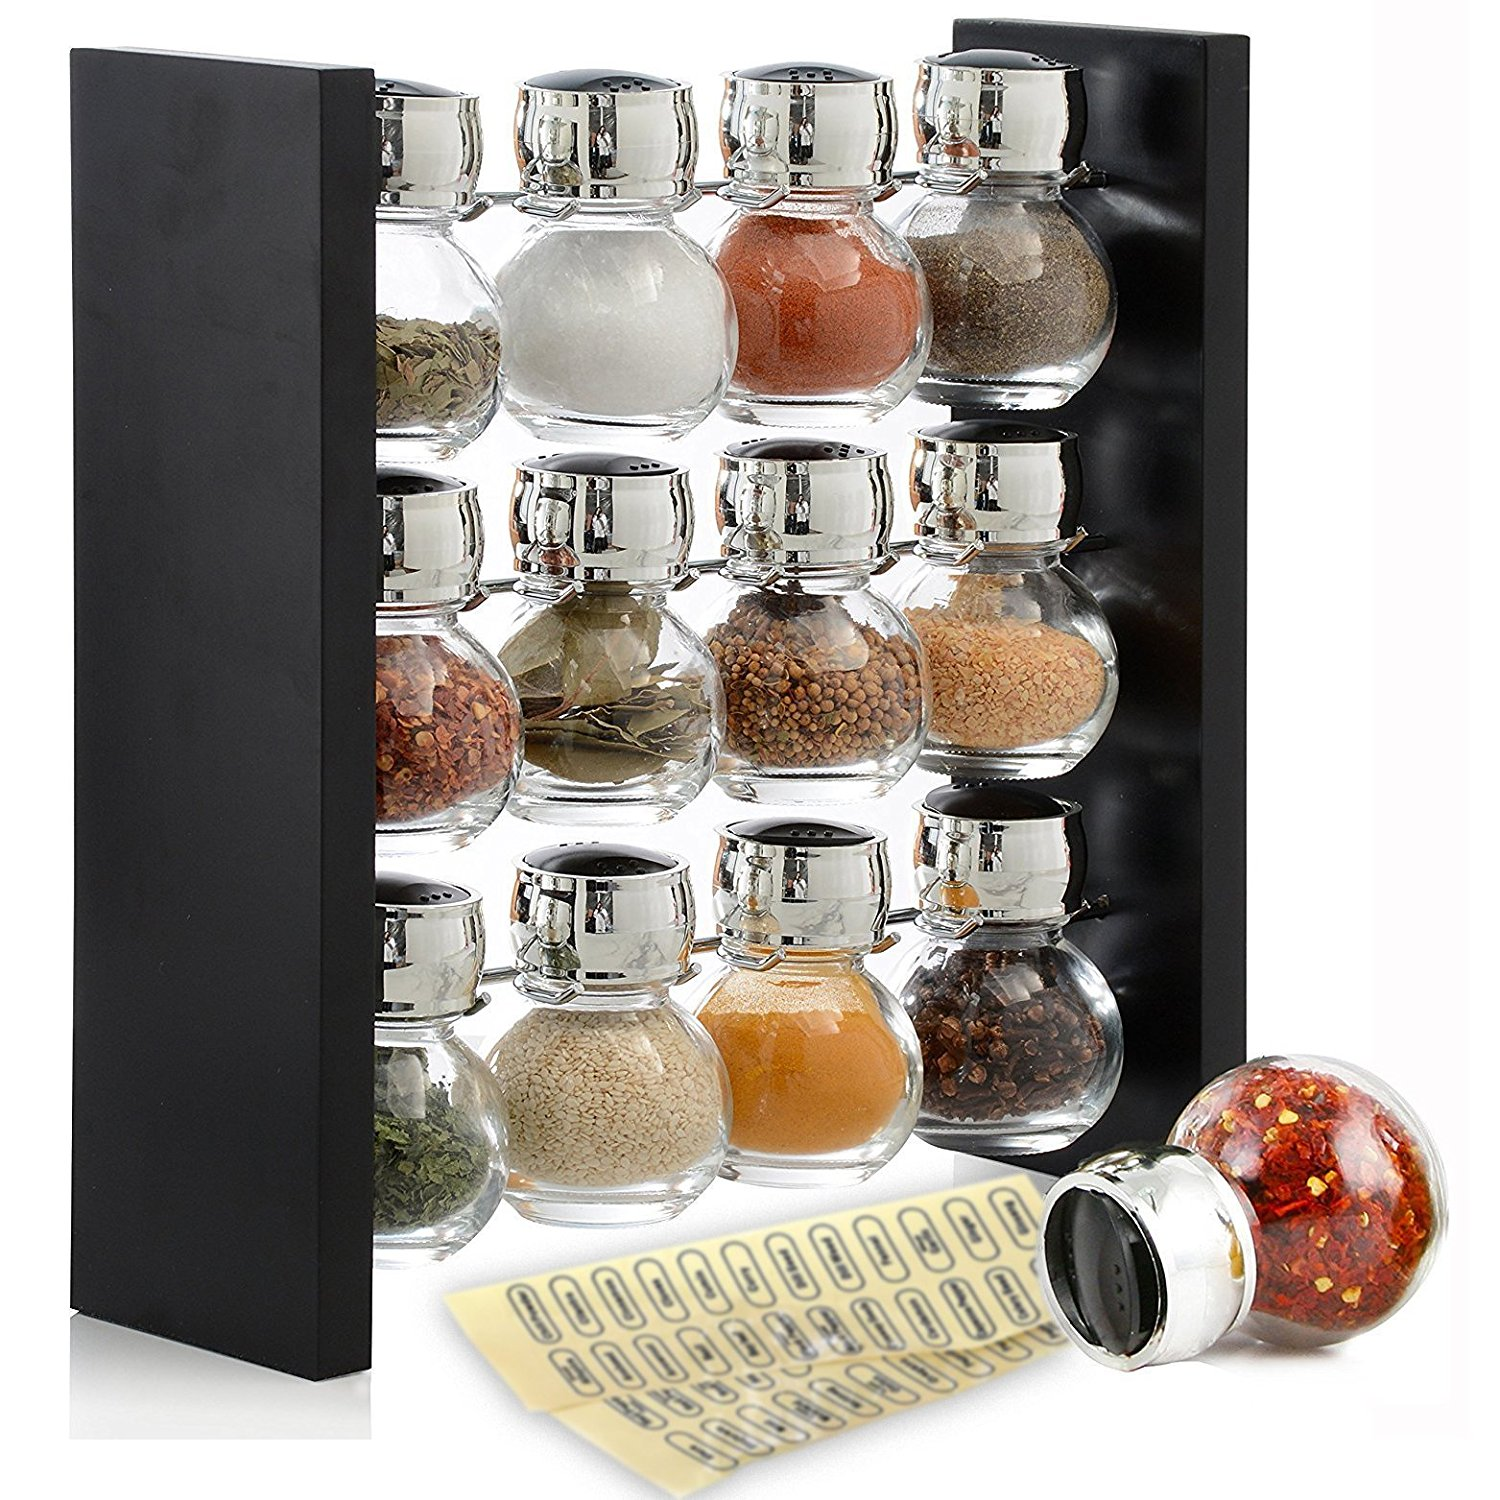 Spice Rack Stand with 12 Clear Glass Bottles Sleek and Kitchen Organizer